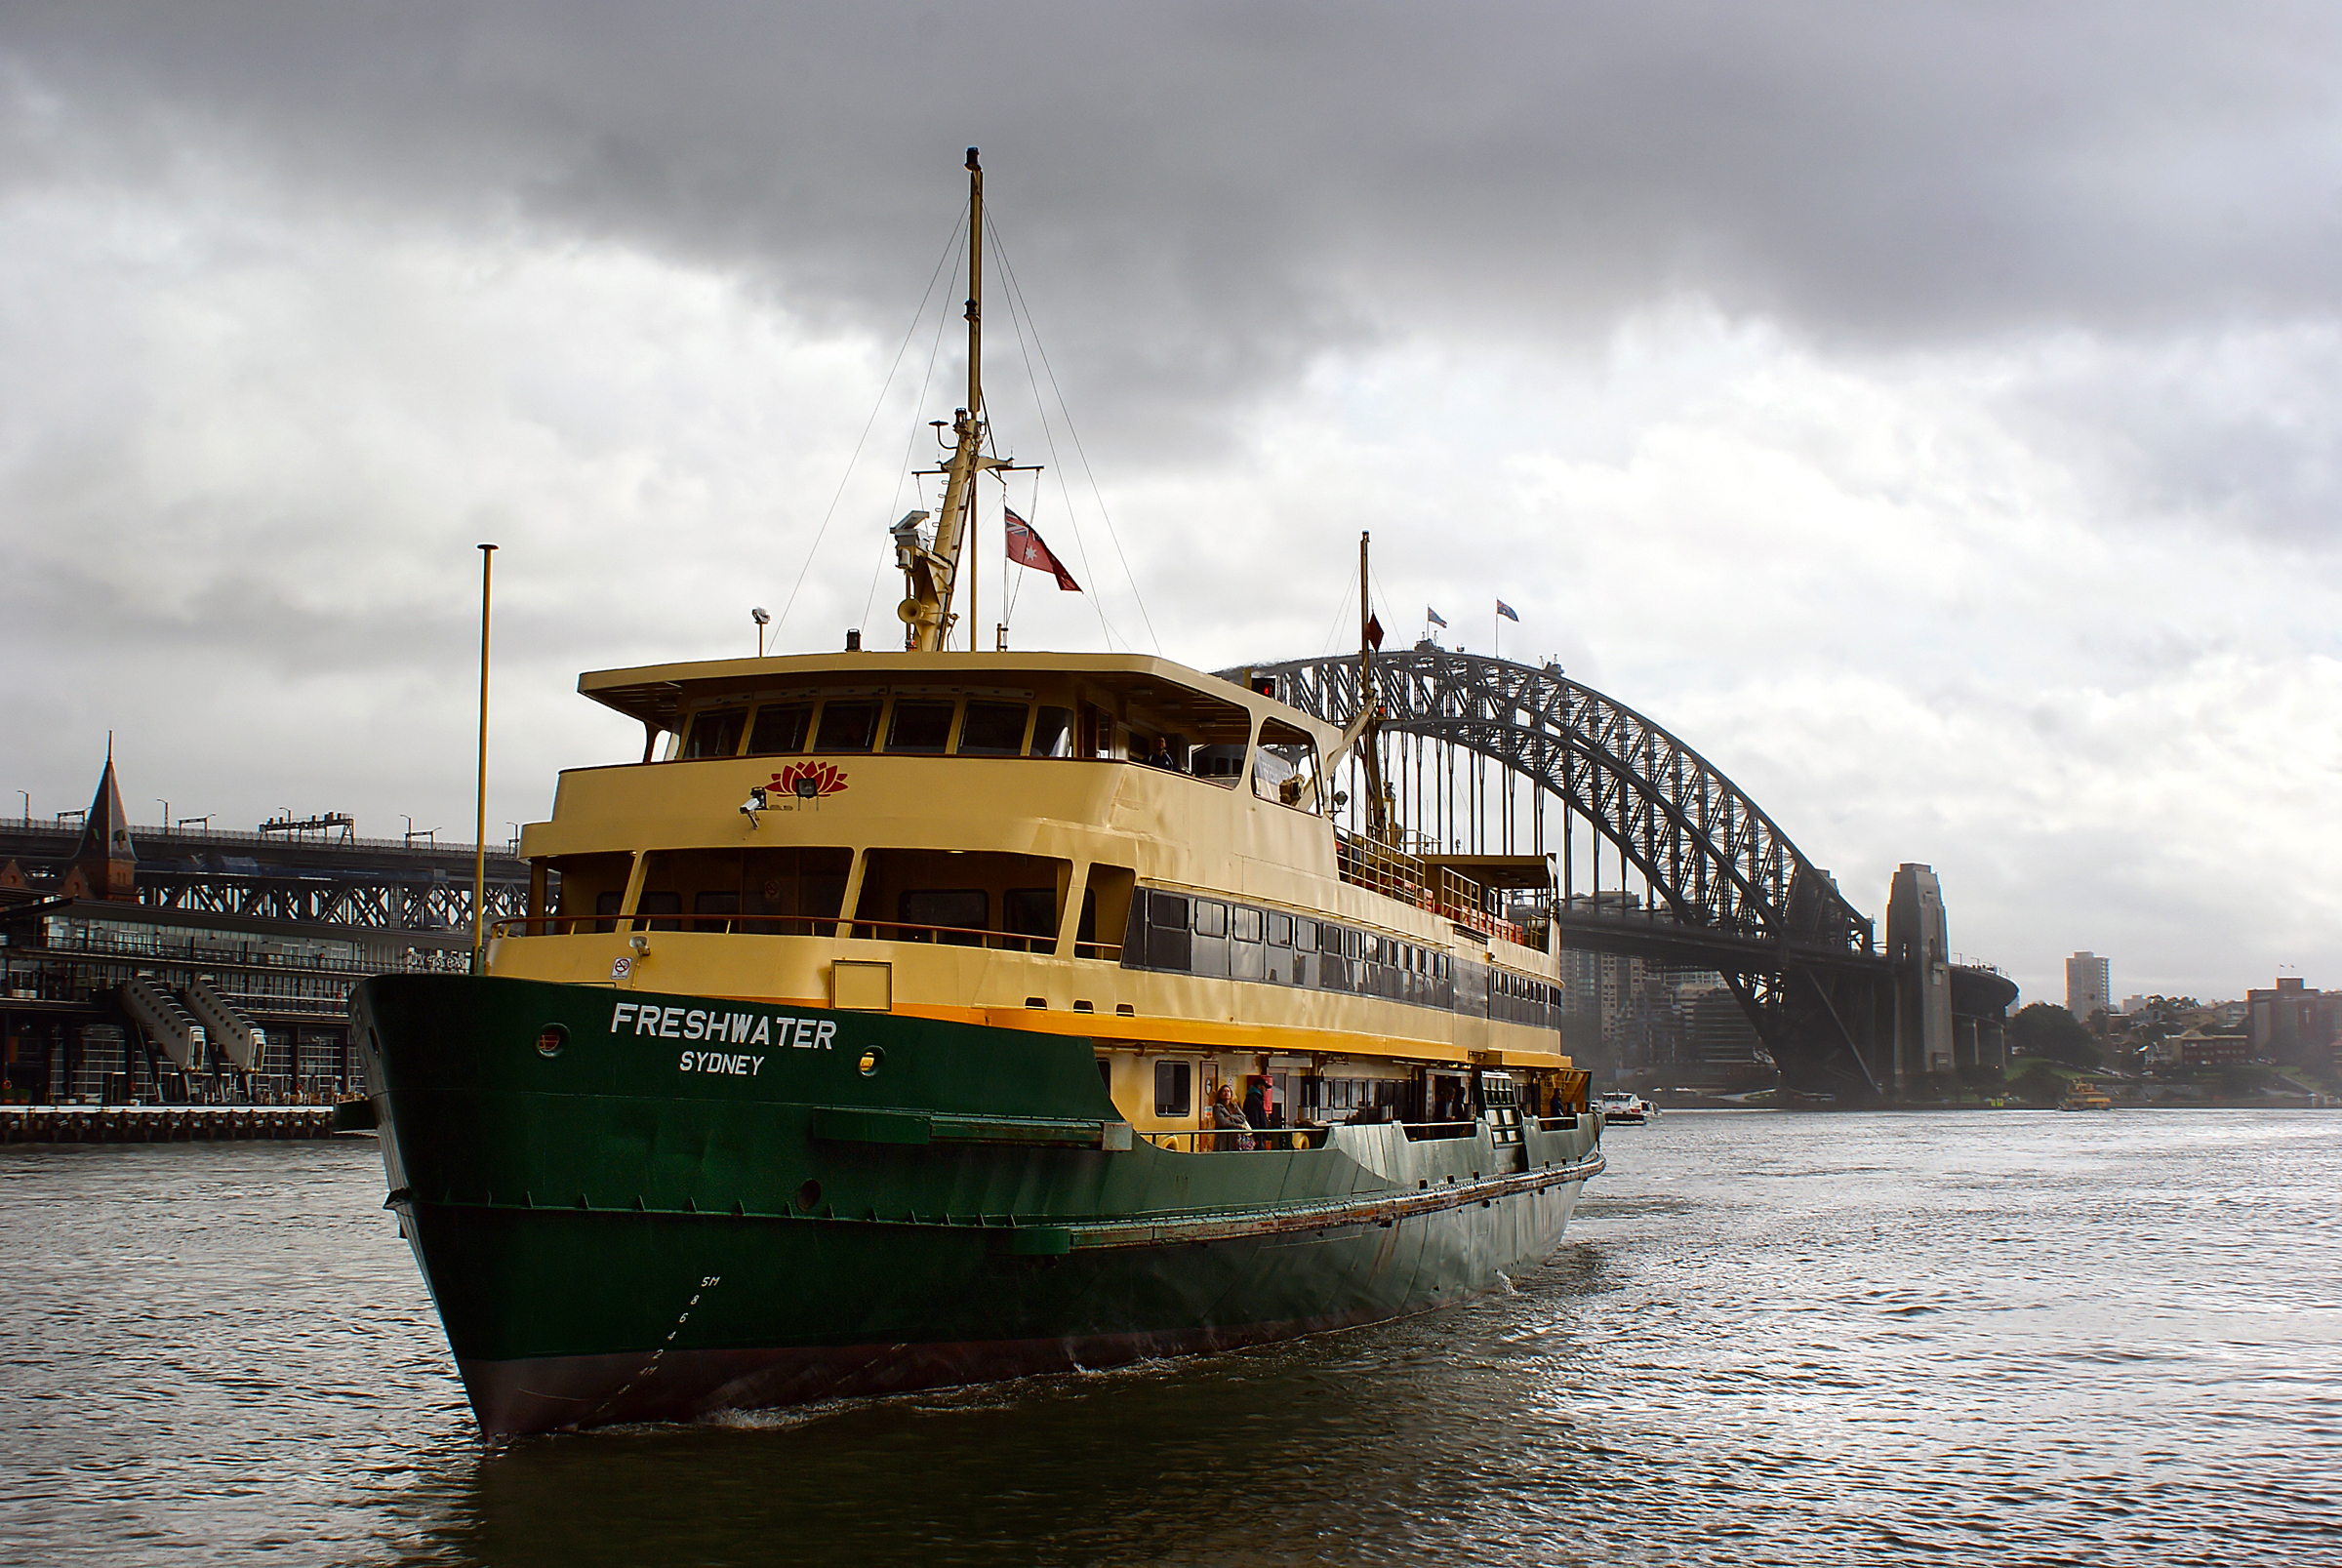 sea-boat-river-ship-transport-vehicle-sydney-harbor-cargo-ship-waterway-ferry-channel-tugboat-sydneyharbourbridge-watercraft-steamboat-fishing-vessel-passenger-ship-freight-transport-ocean-liner-passangerservices-506214